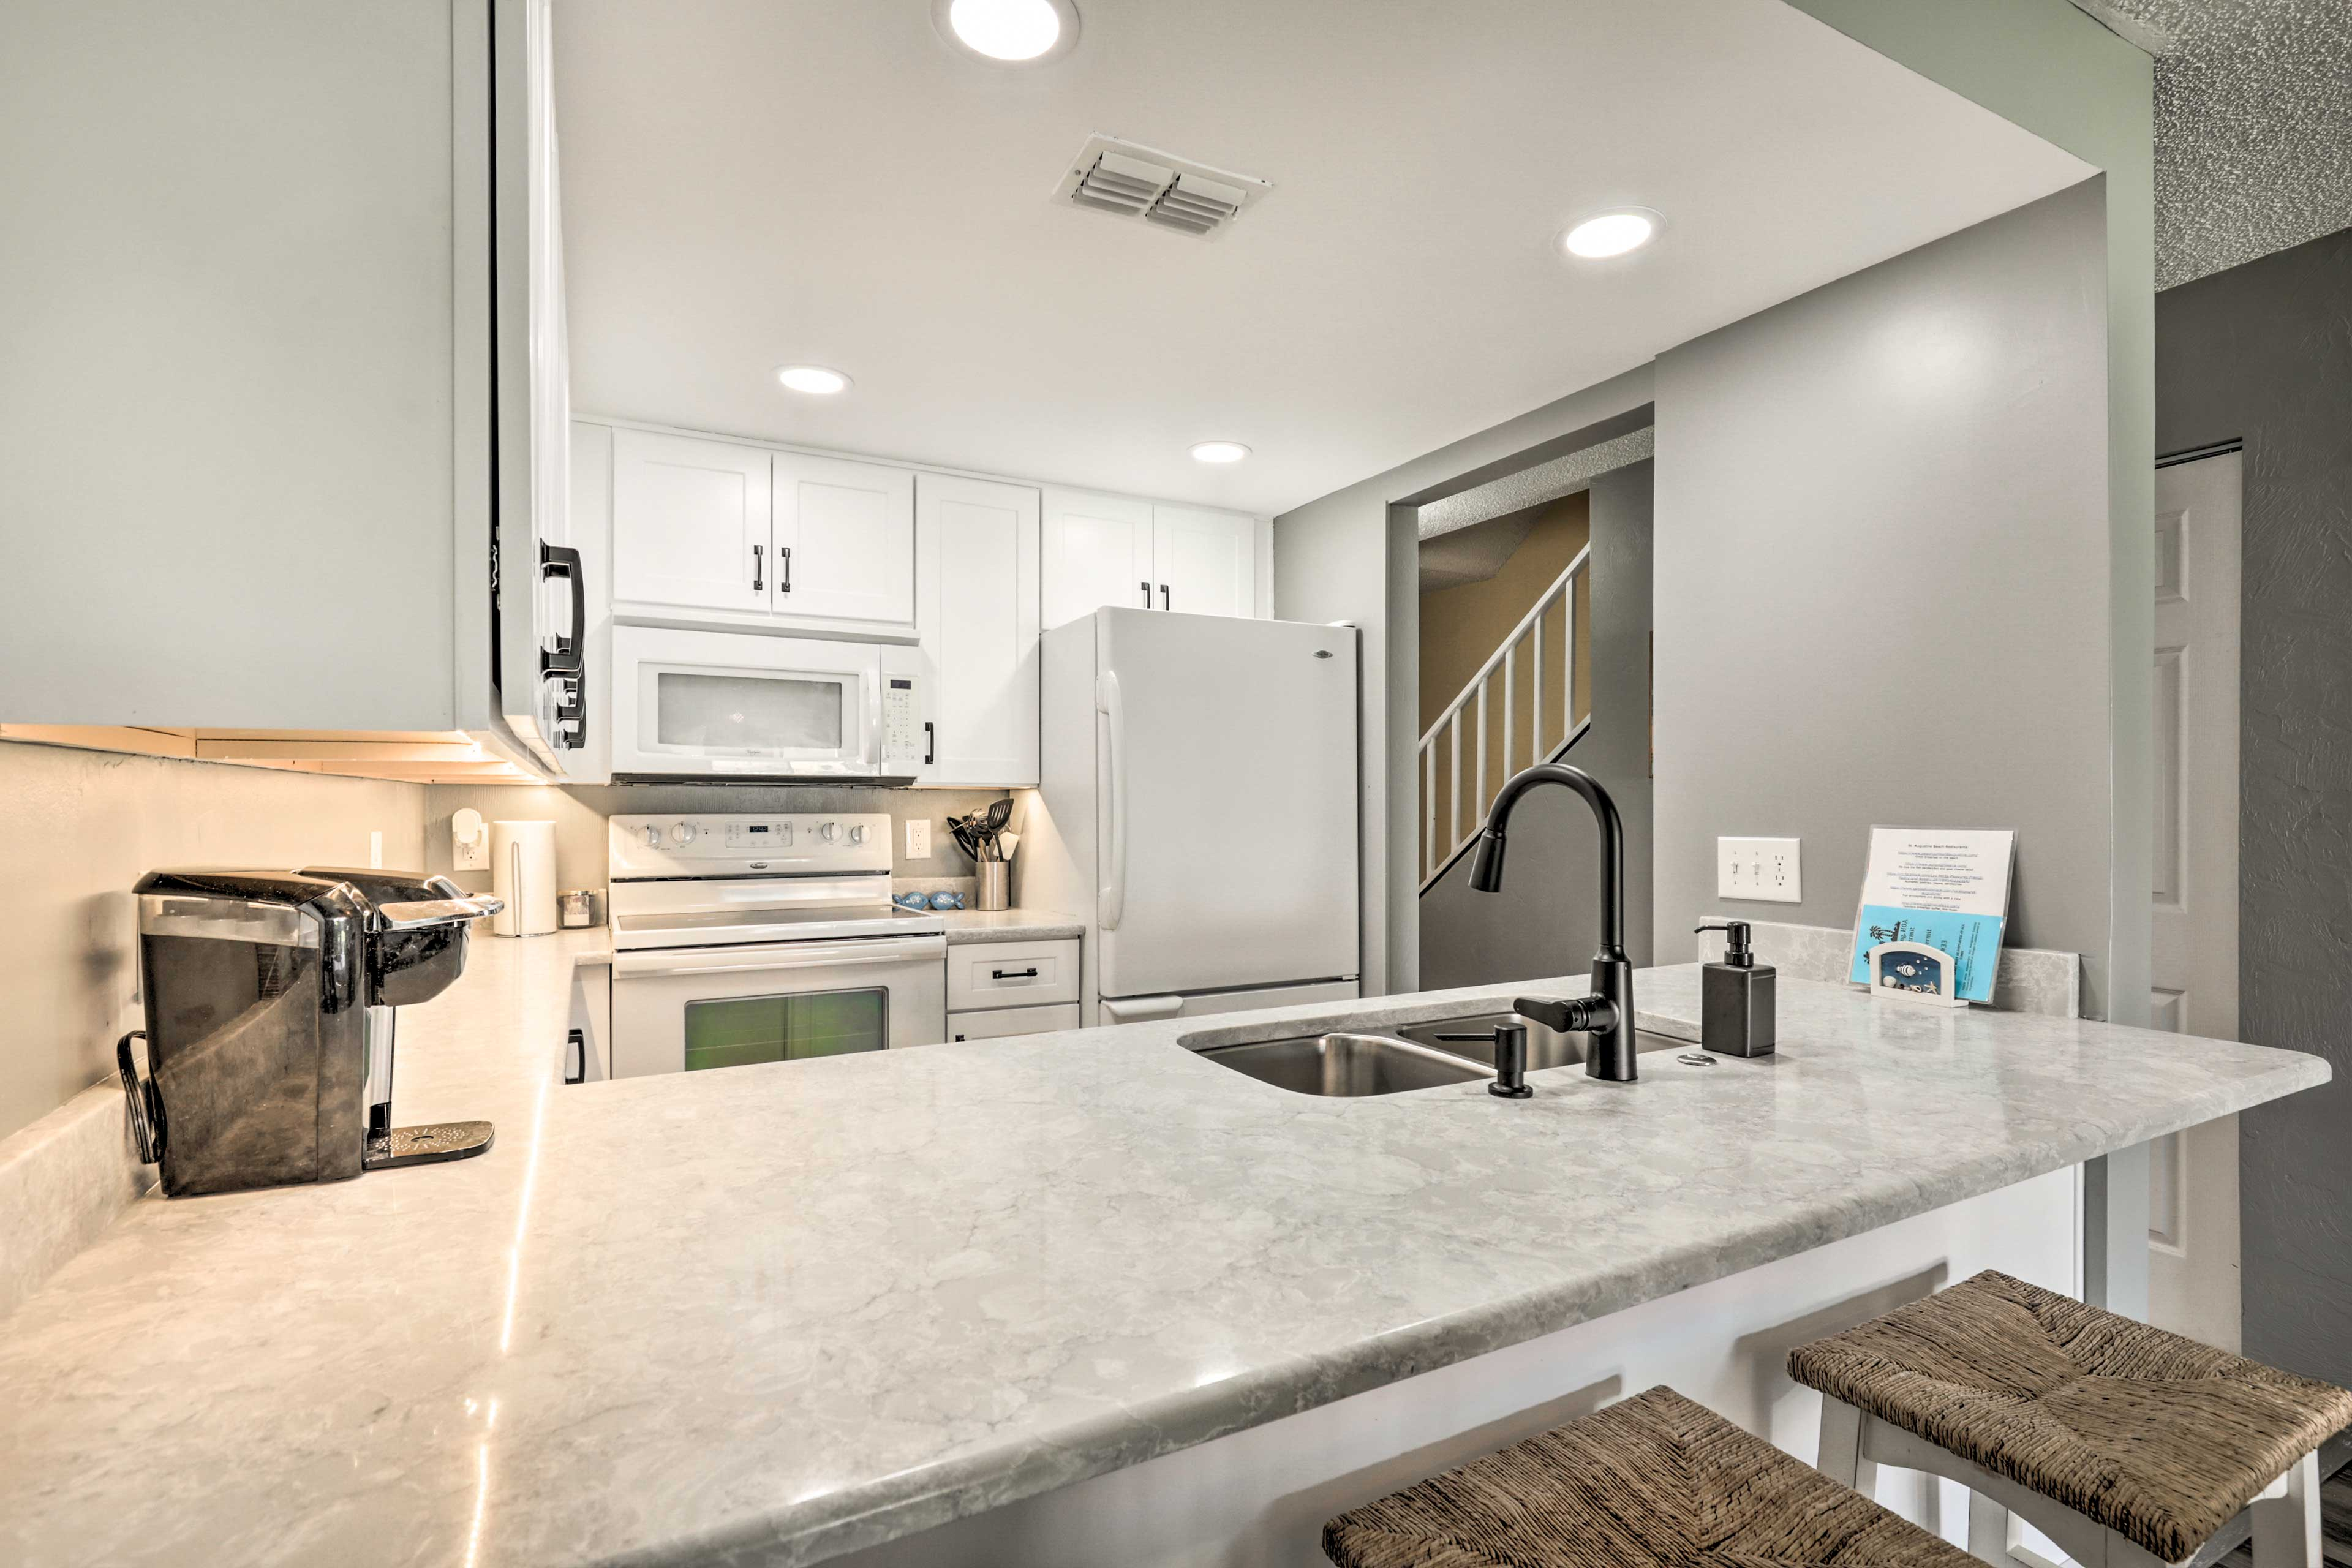 Prefer to eat-in? There's a fully equipped kitchen here for you to do just that.